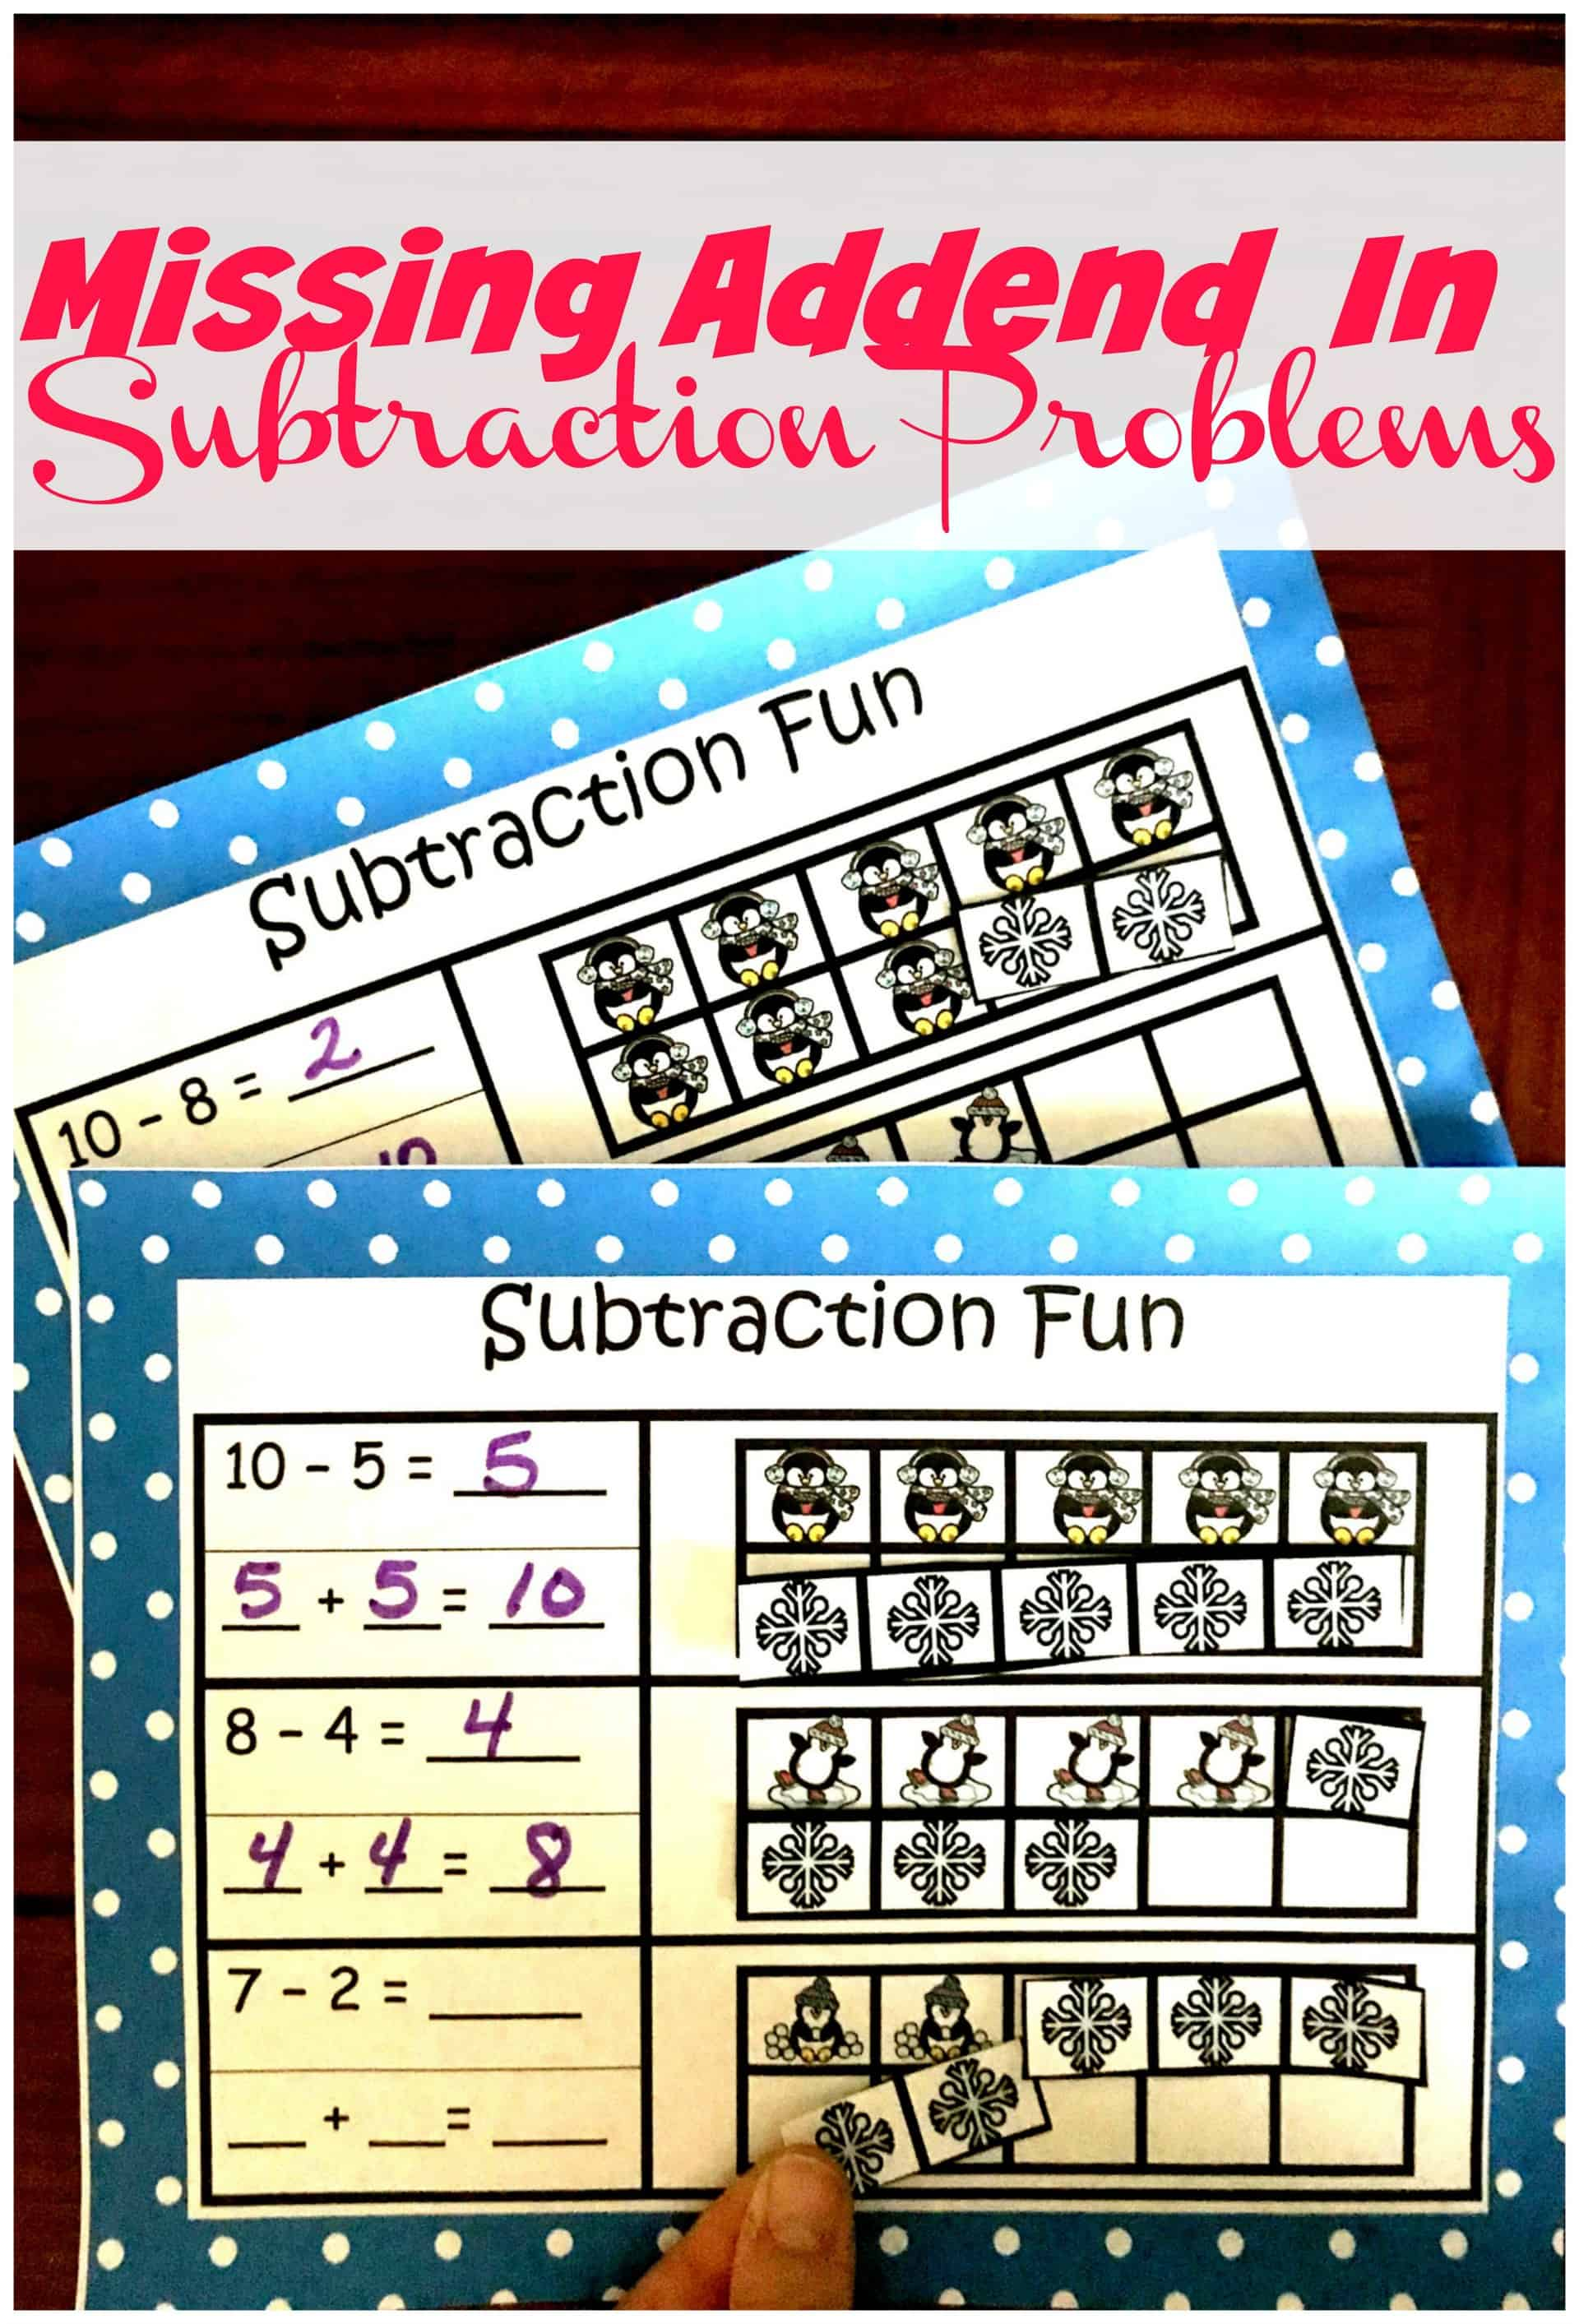 Help children understand counting on or missing addend in a subtraction problem with this no-prep cut and paste sheet. They will begin to understand subtraction as an unknown-addend problem. For example, For subtract 12 - 7 by finding the number that makes 12 when added to 7.